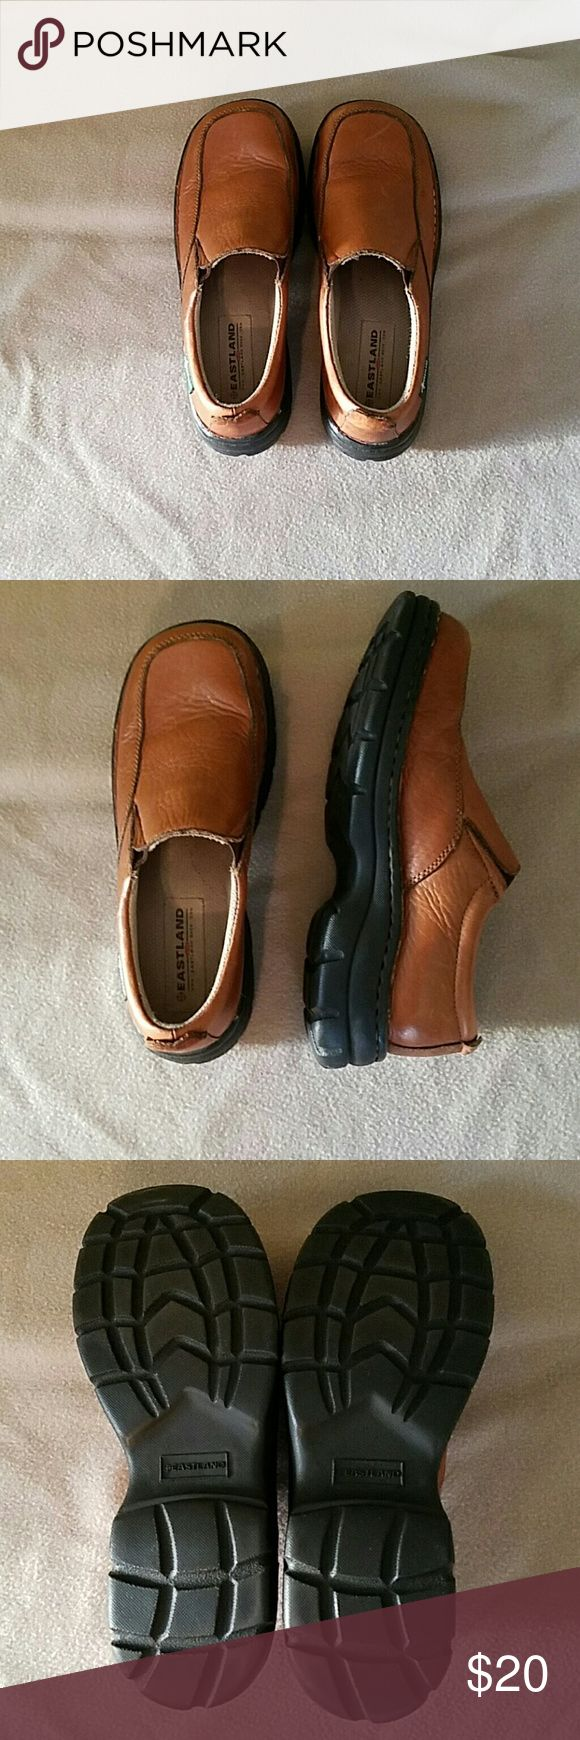 EASTLAND SHOES mules/clogs EASTLAND SHOES mules/clogs in good condition only worn twice. Eastland Shoes Mules & Clogs